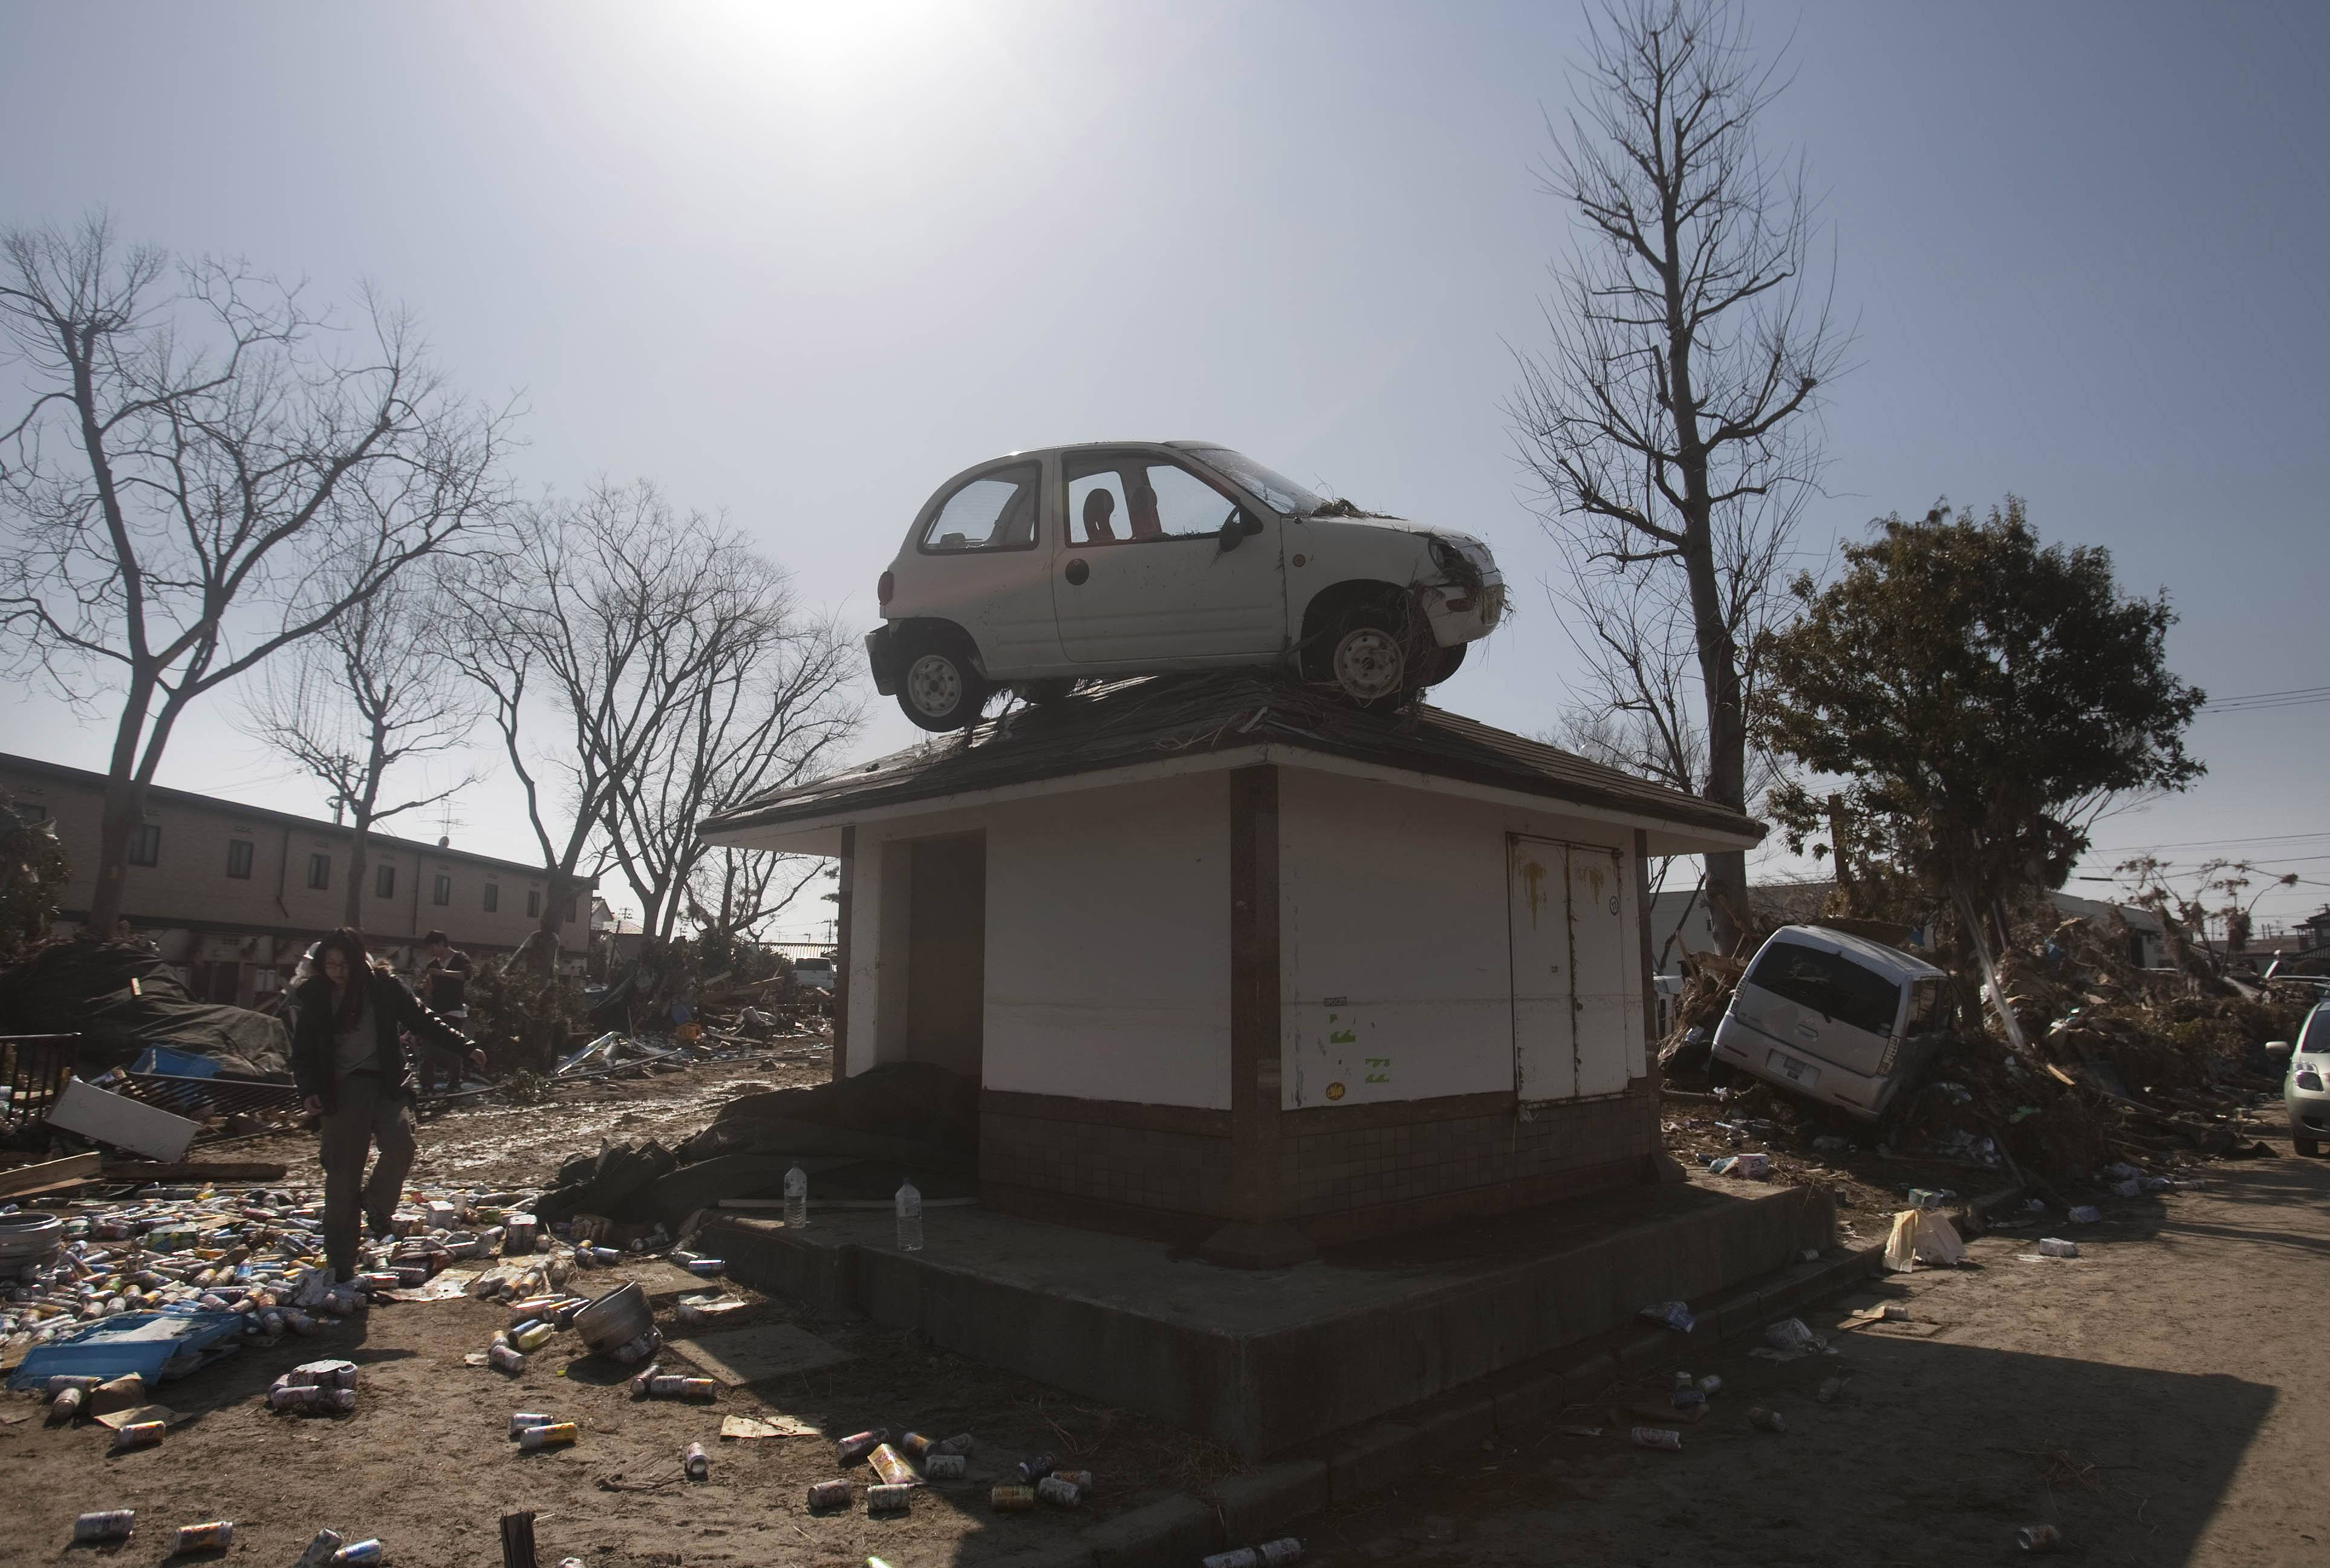 A car sits on top of a small building in a destroyed neighborhood in Sendai, Japan, on Sunday, March 13, 2011 after it was washed into the area by the tsunami that hit northeastern Japan.